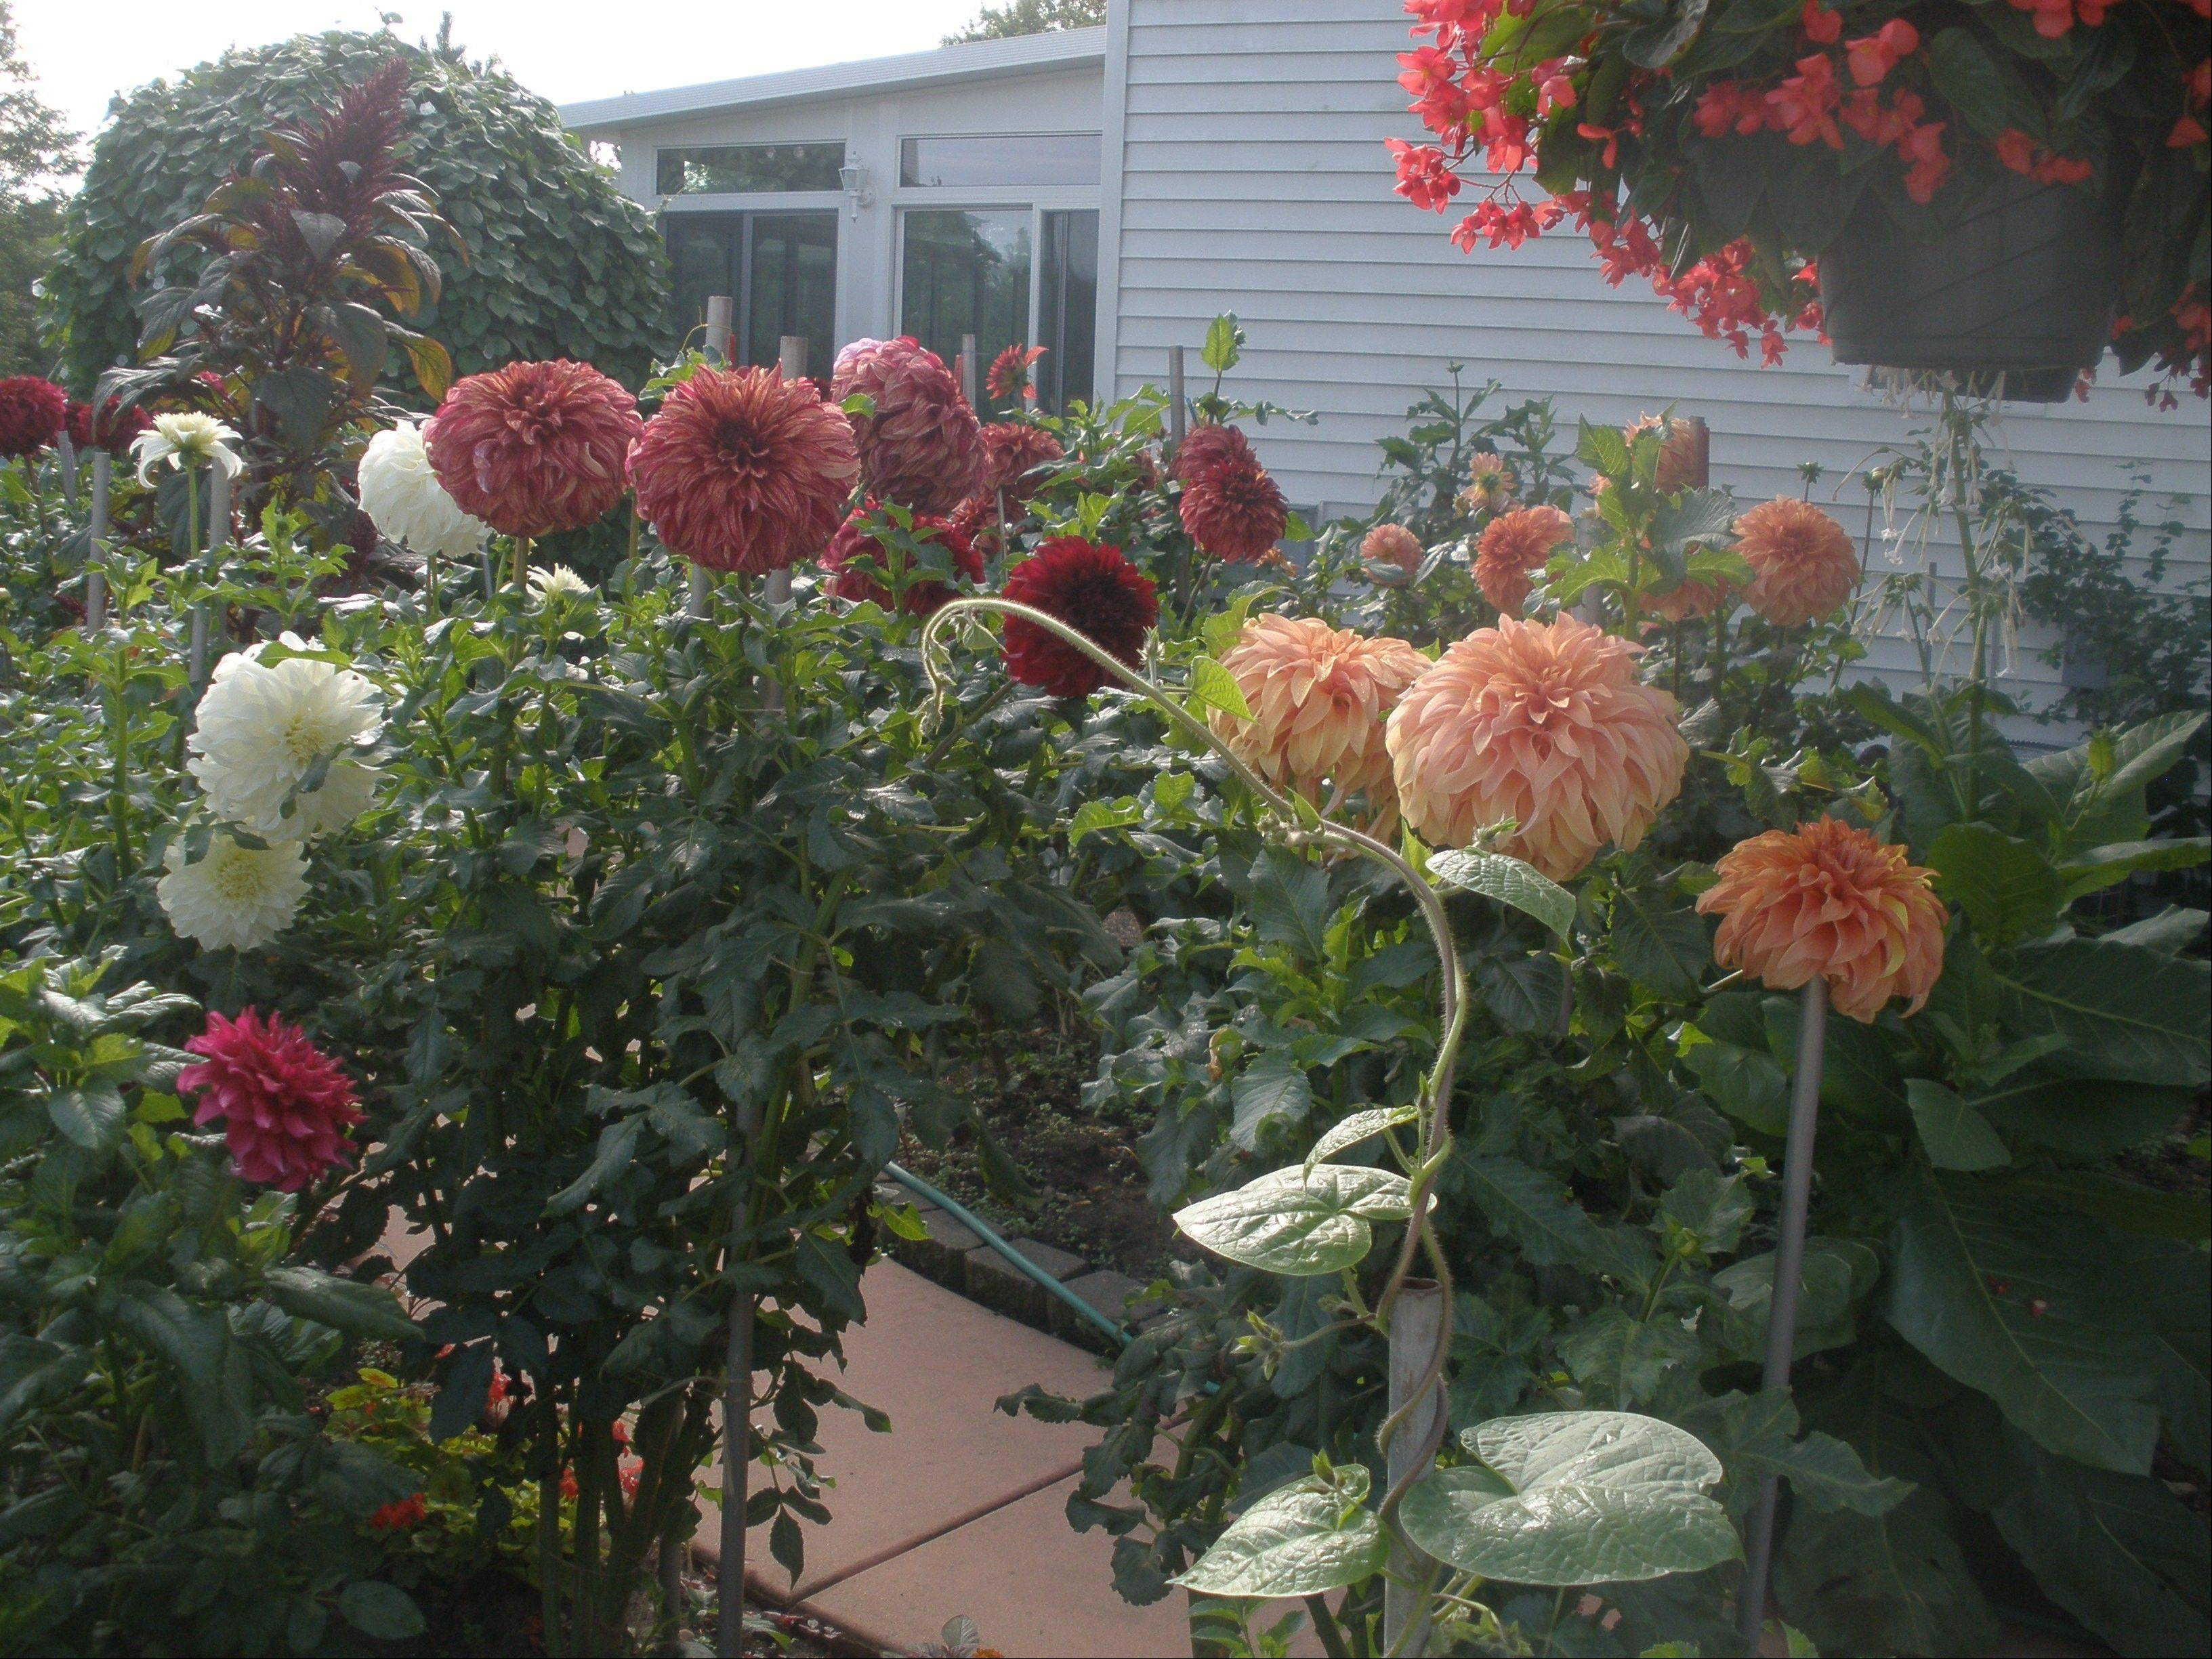 Here's a view of Steve Meggos' Carpentersville yard with his dahlias in bloom.